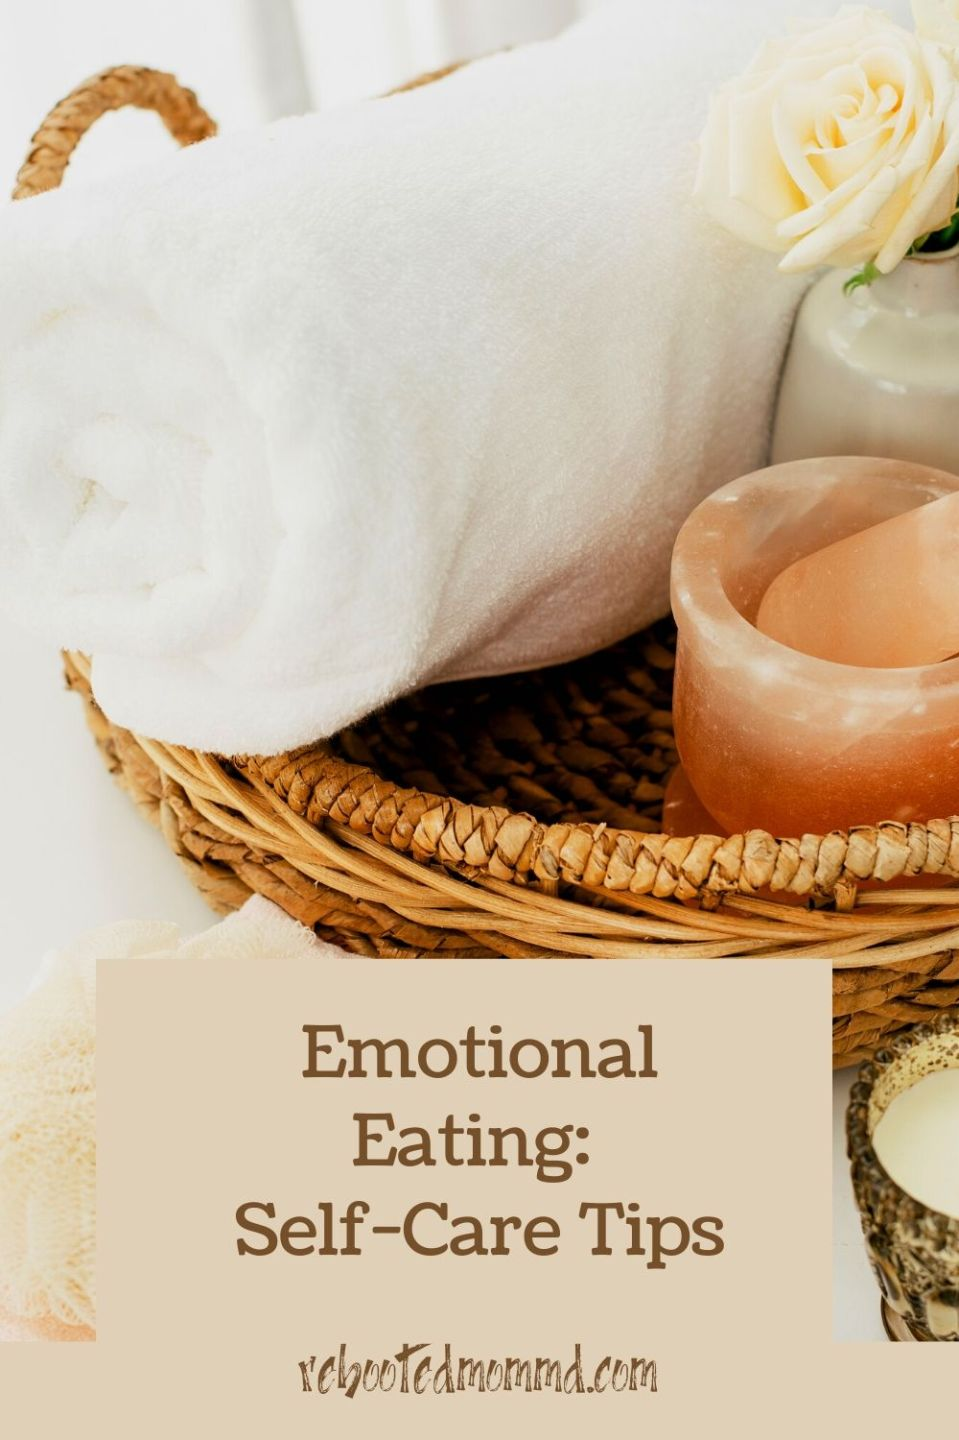 Self-Care Tips to Manage Emotional Eating